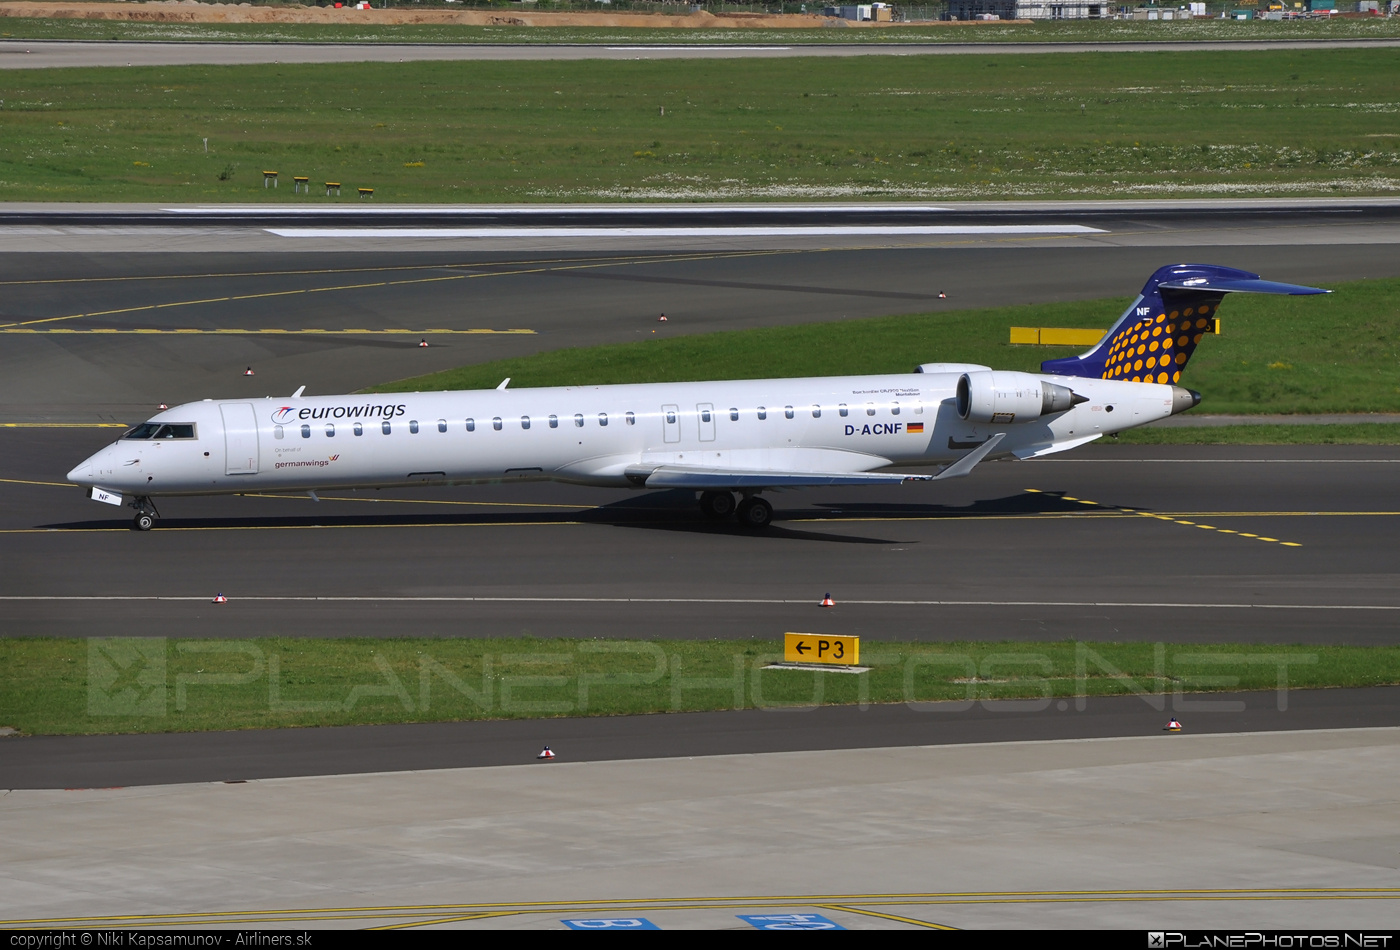 Bombardier CRJ900 NextGen - D-ACNF operated by Eurowings #bombardier #crj900 #crj900nextgen #crj900ng #eurowings